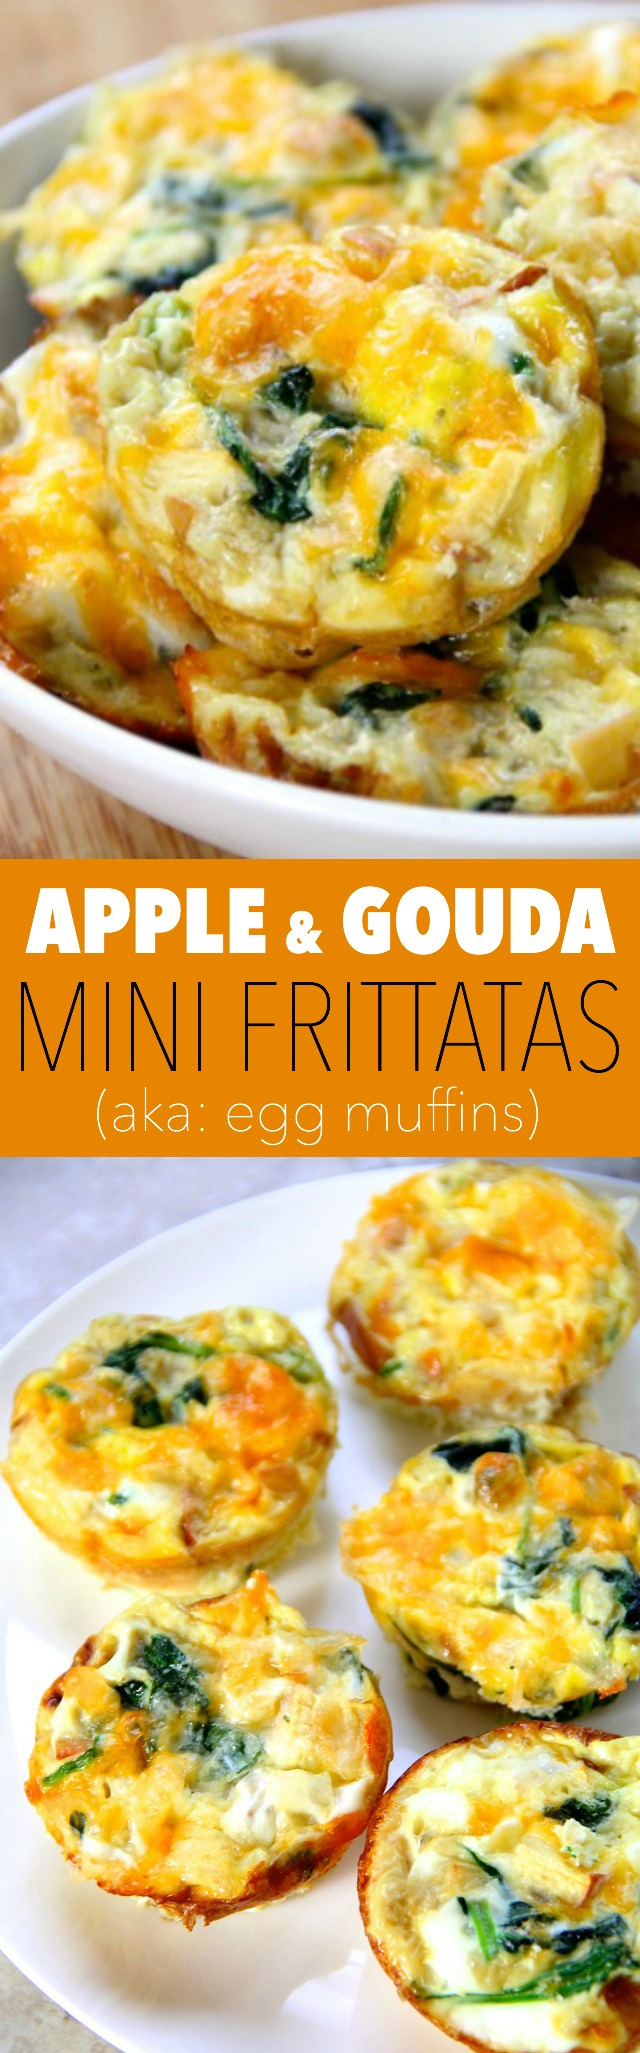 Apple and Gouda Mini Frittatas -- these delicious little egg muffins make a perfect grab-and-go breakfast or a fun brunch! Make ahead and simply pop them in the microwave when you're ready to eat    runningwithspoons.com #breakfast #brunch #eggs